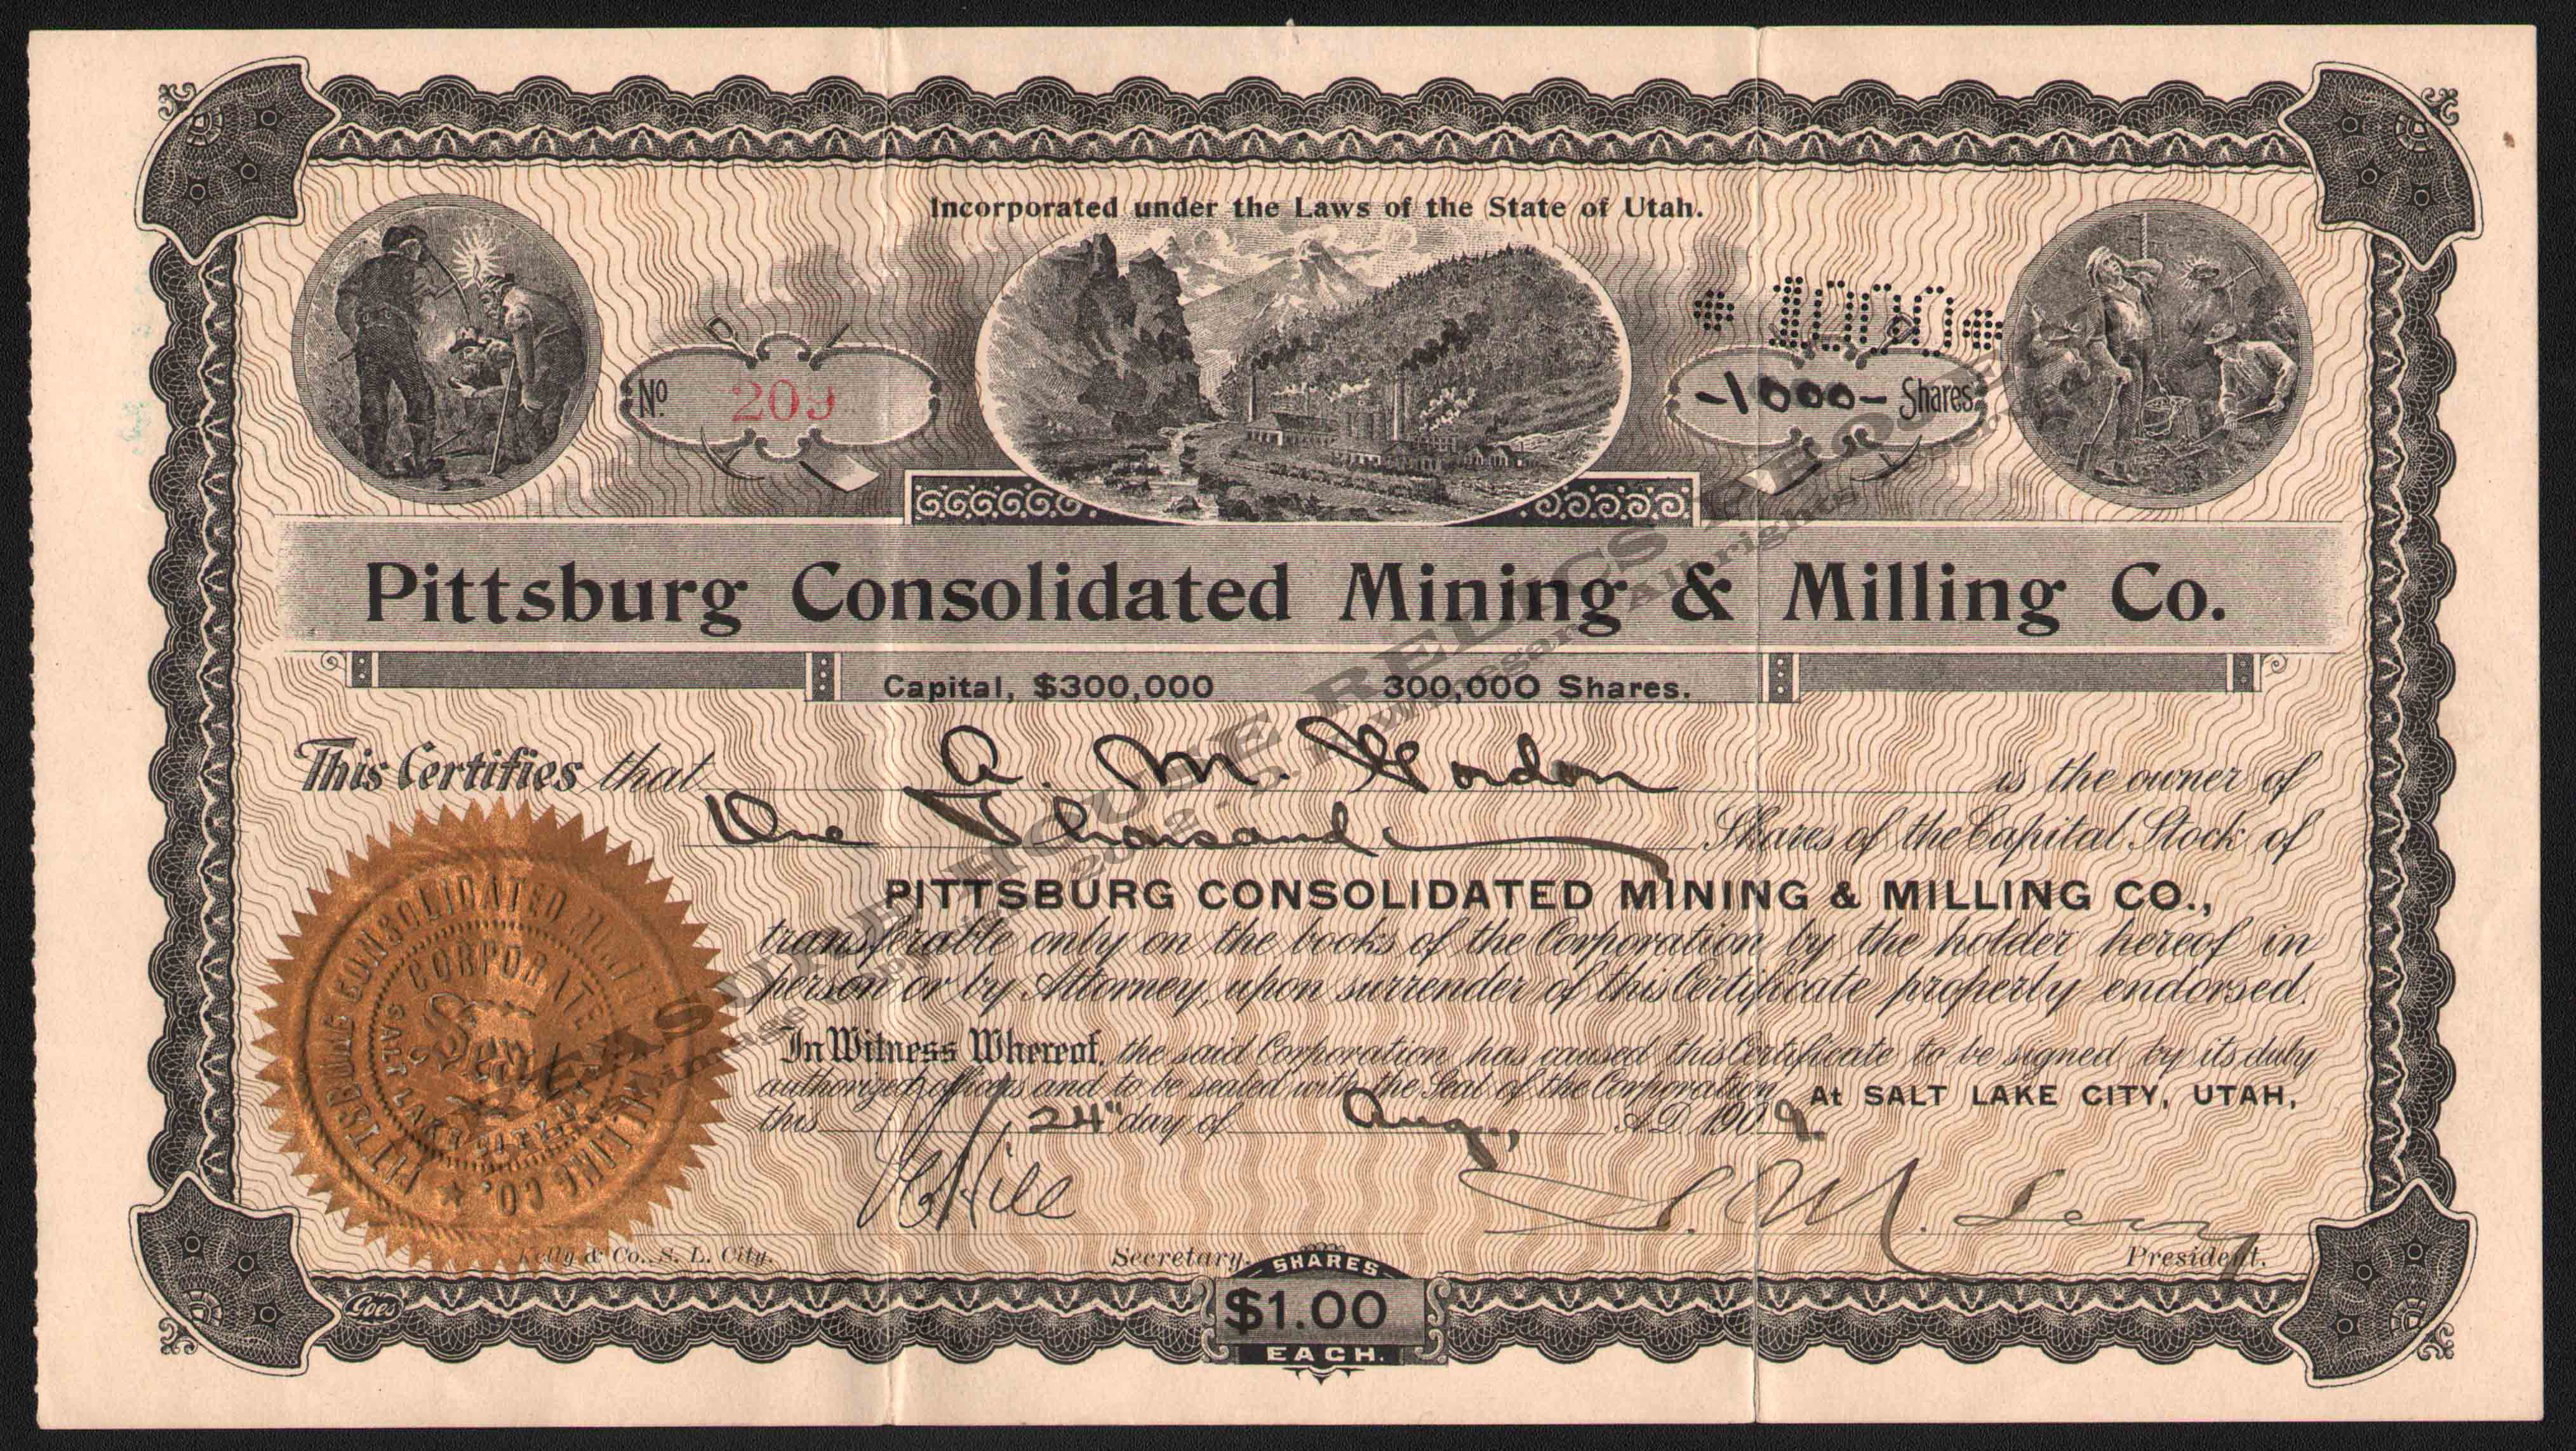 PITTSBURG_CONSOLIDATED_MINING_MILLING_209_1909_400_EMBOSS.jpg